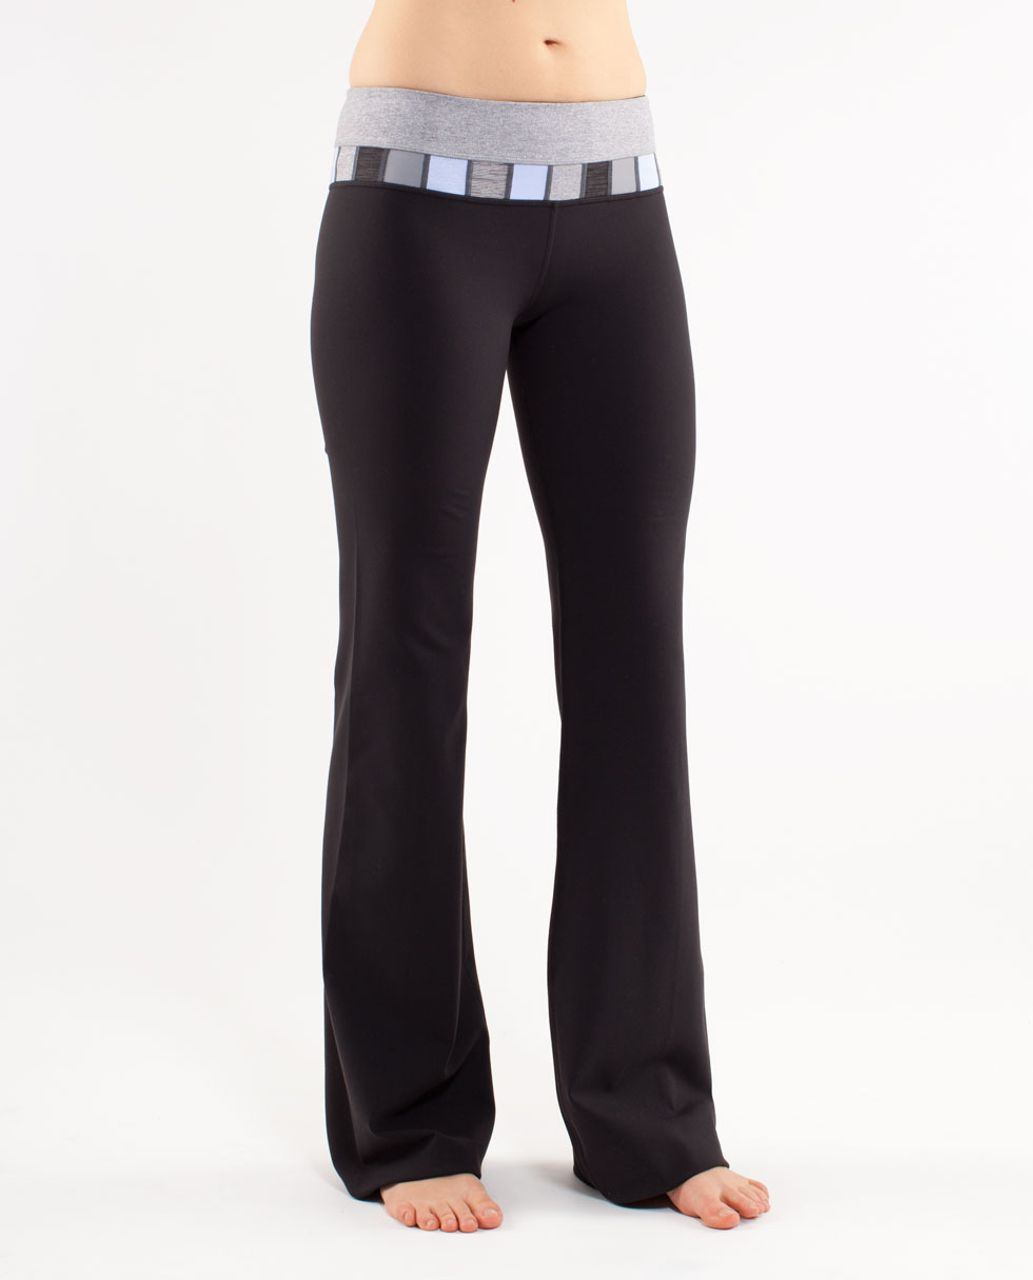 Lululemon Groove Pant (Tall) - Black /  Heathered Fossil /  Quilting Spring 16